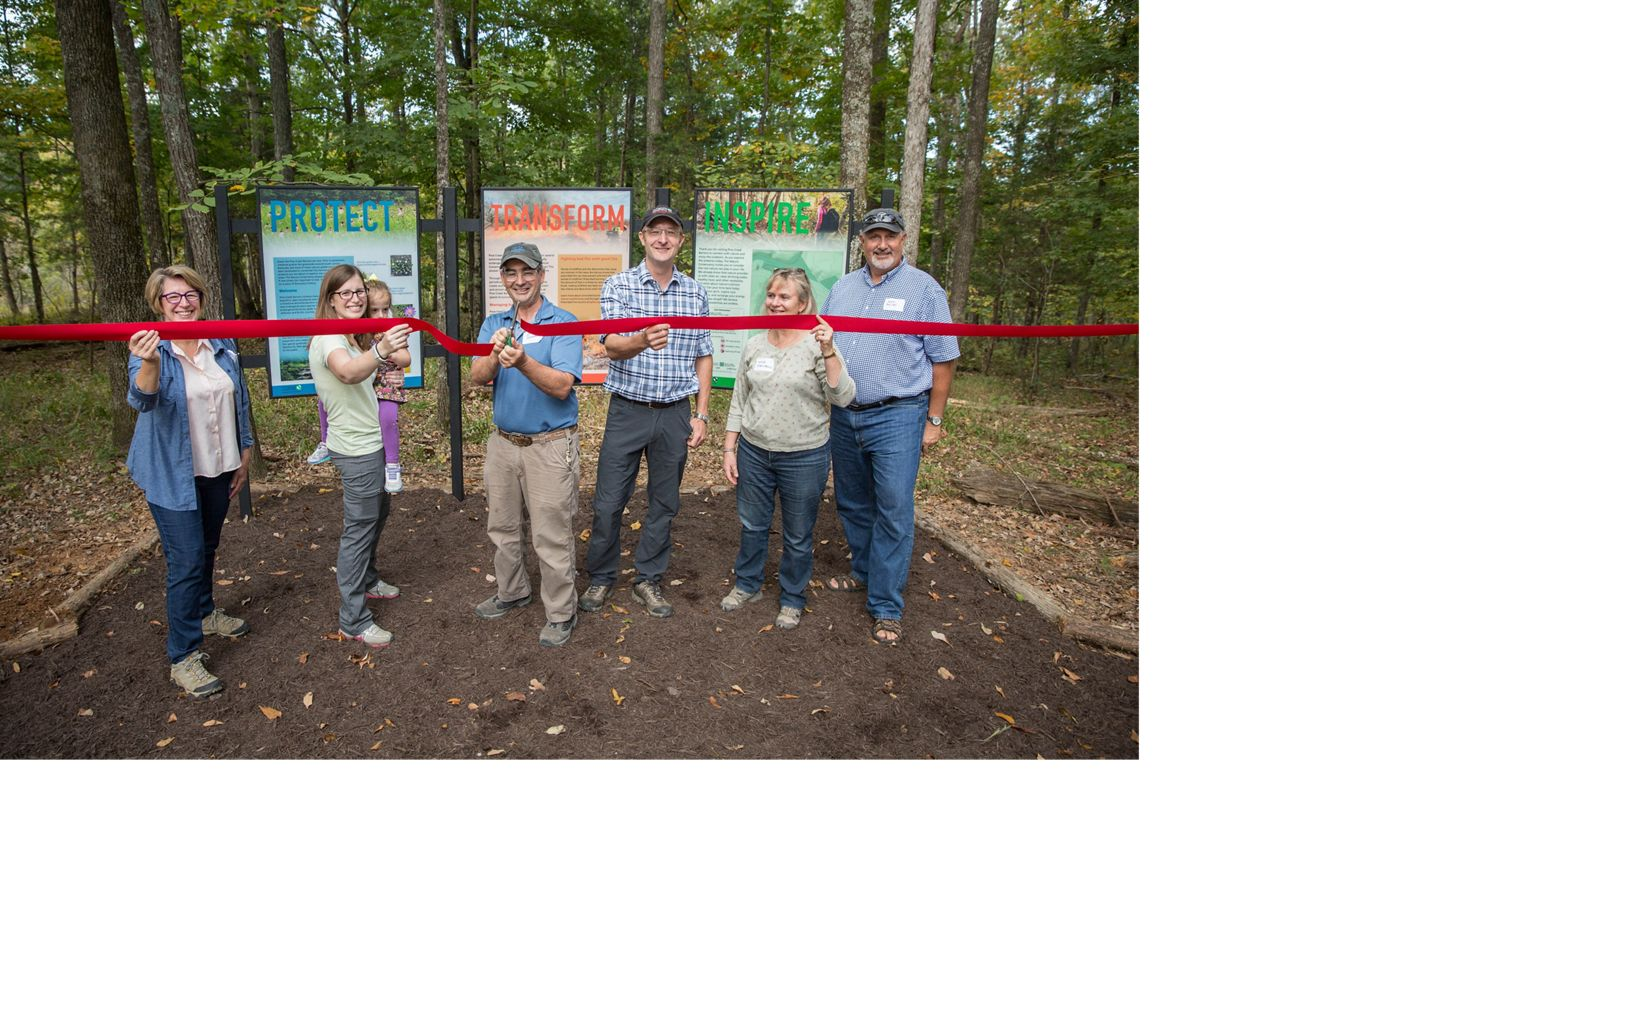 Six people line up to cut a red ribbon.